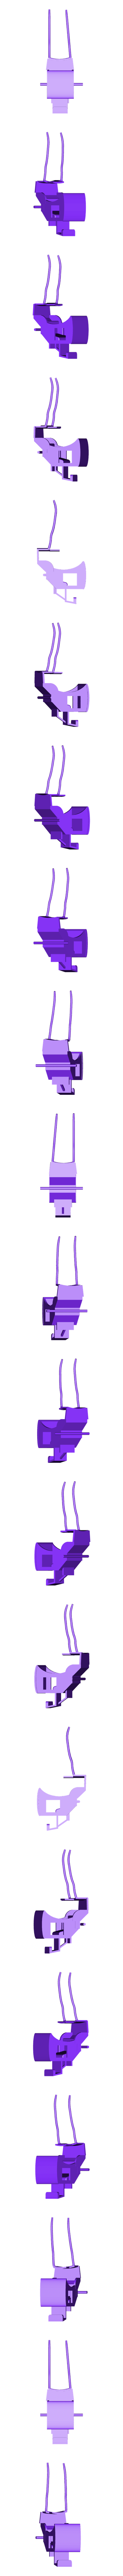 hans_body1_1.stl Download free STL file Ripper's London - The Hansom Cab • 3D printable design, Earsling